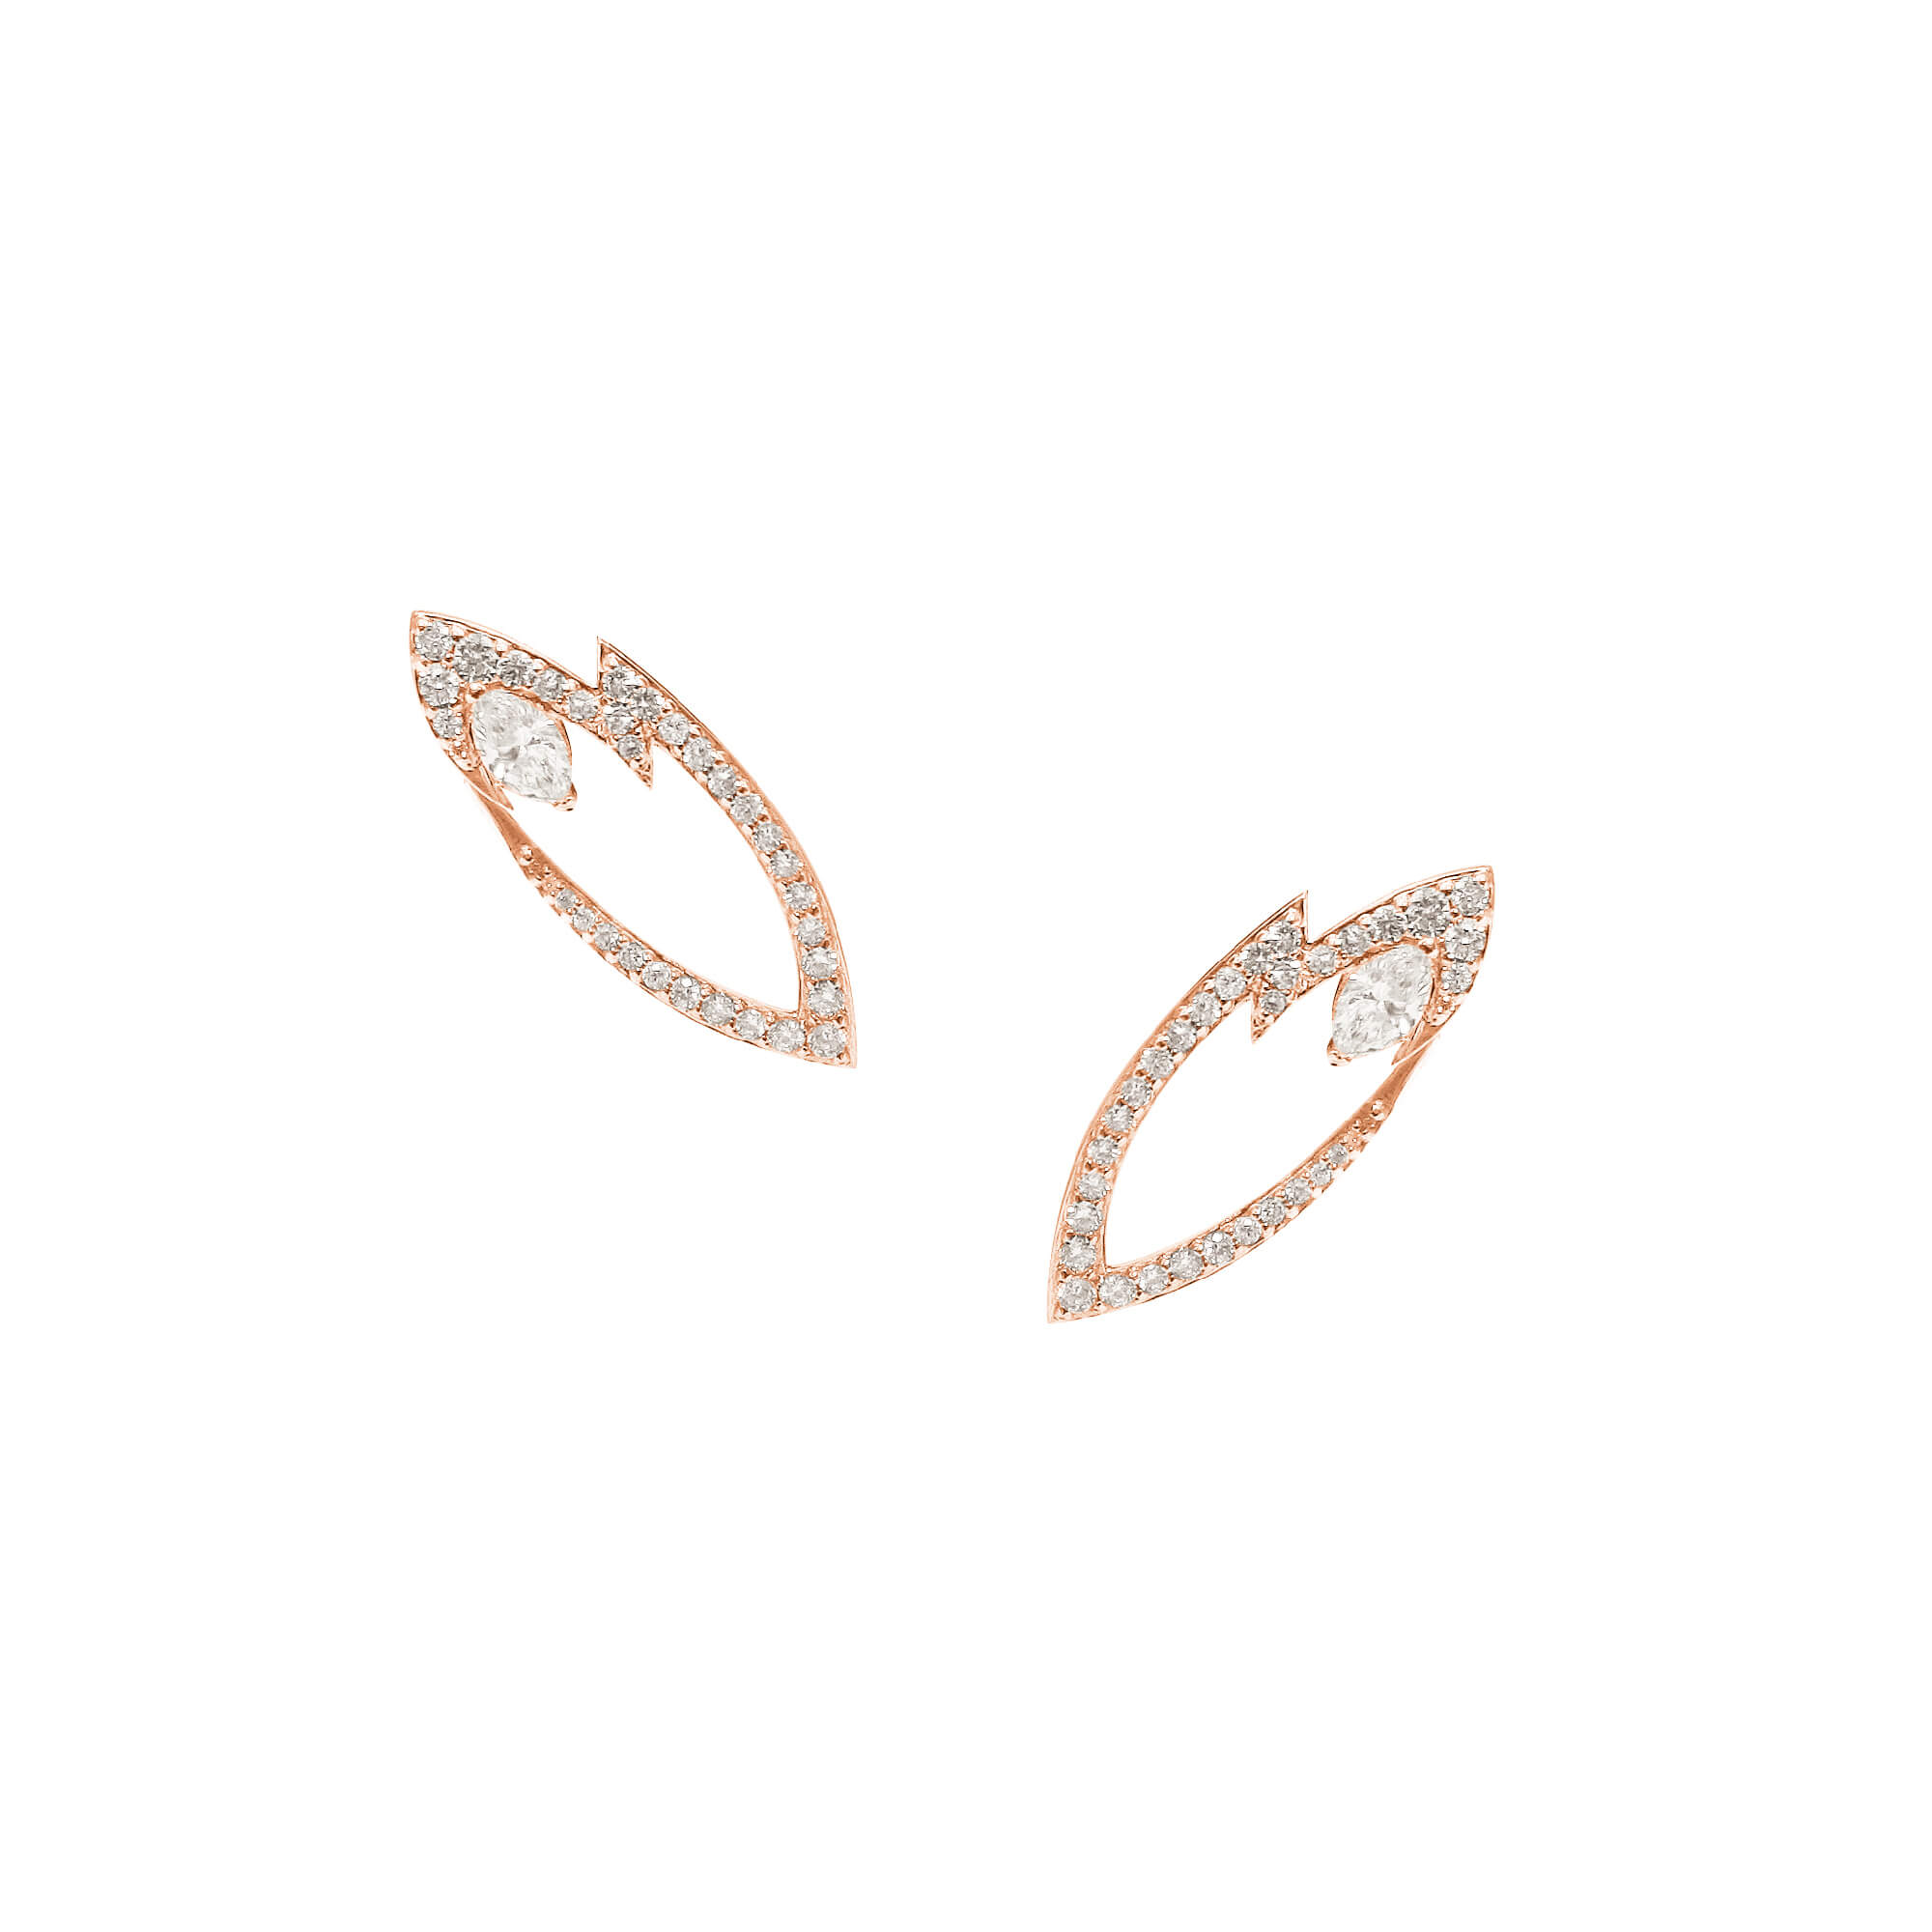 Rose Gold Earrings With White Diamonds | Thorn